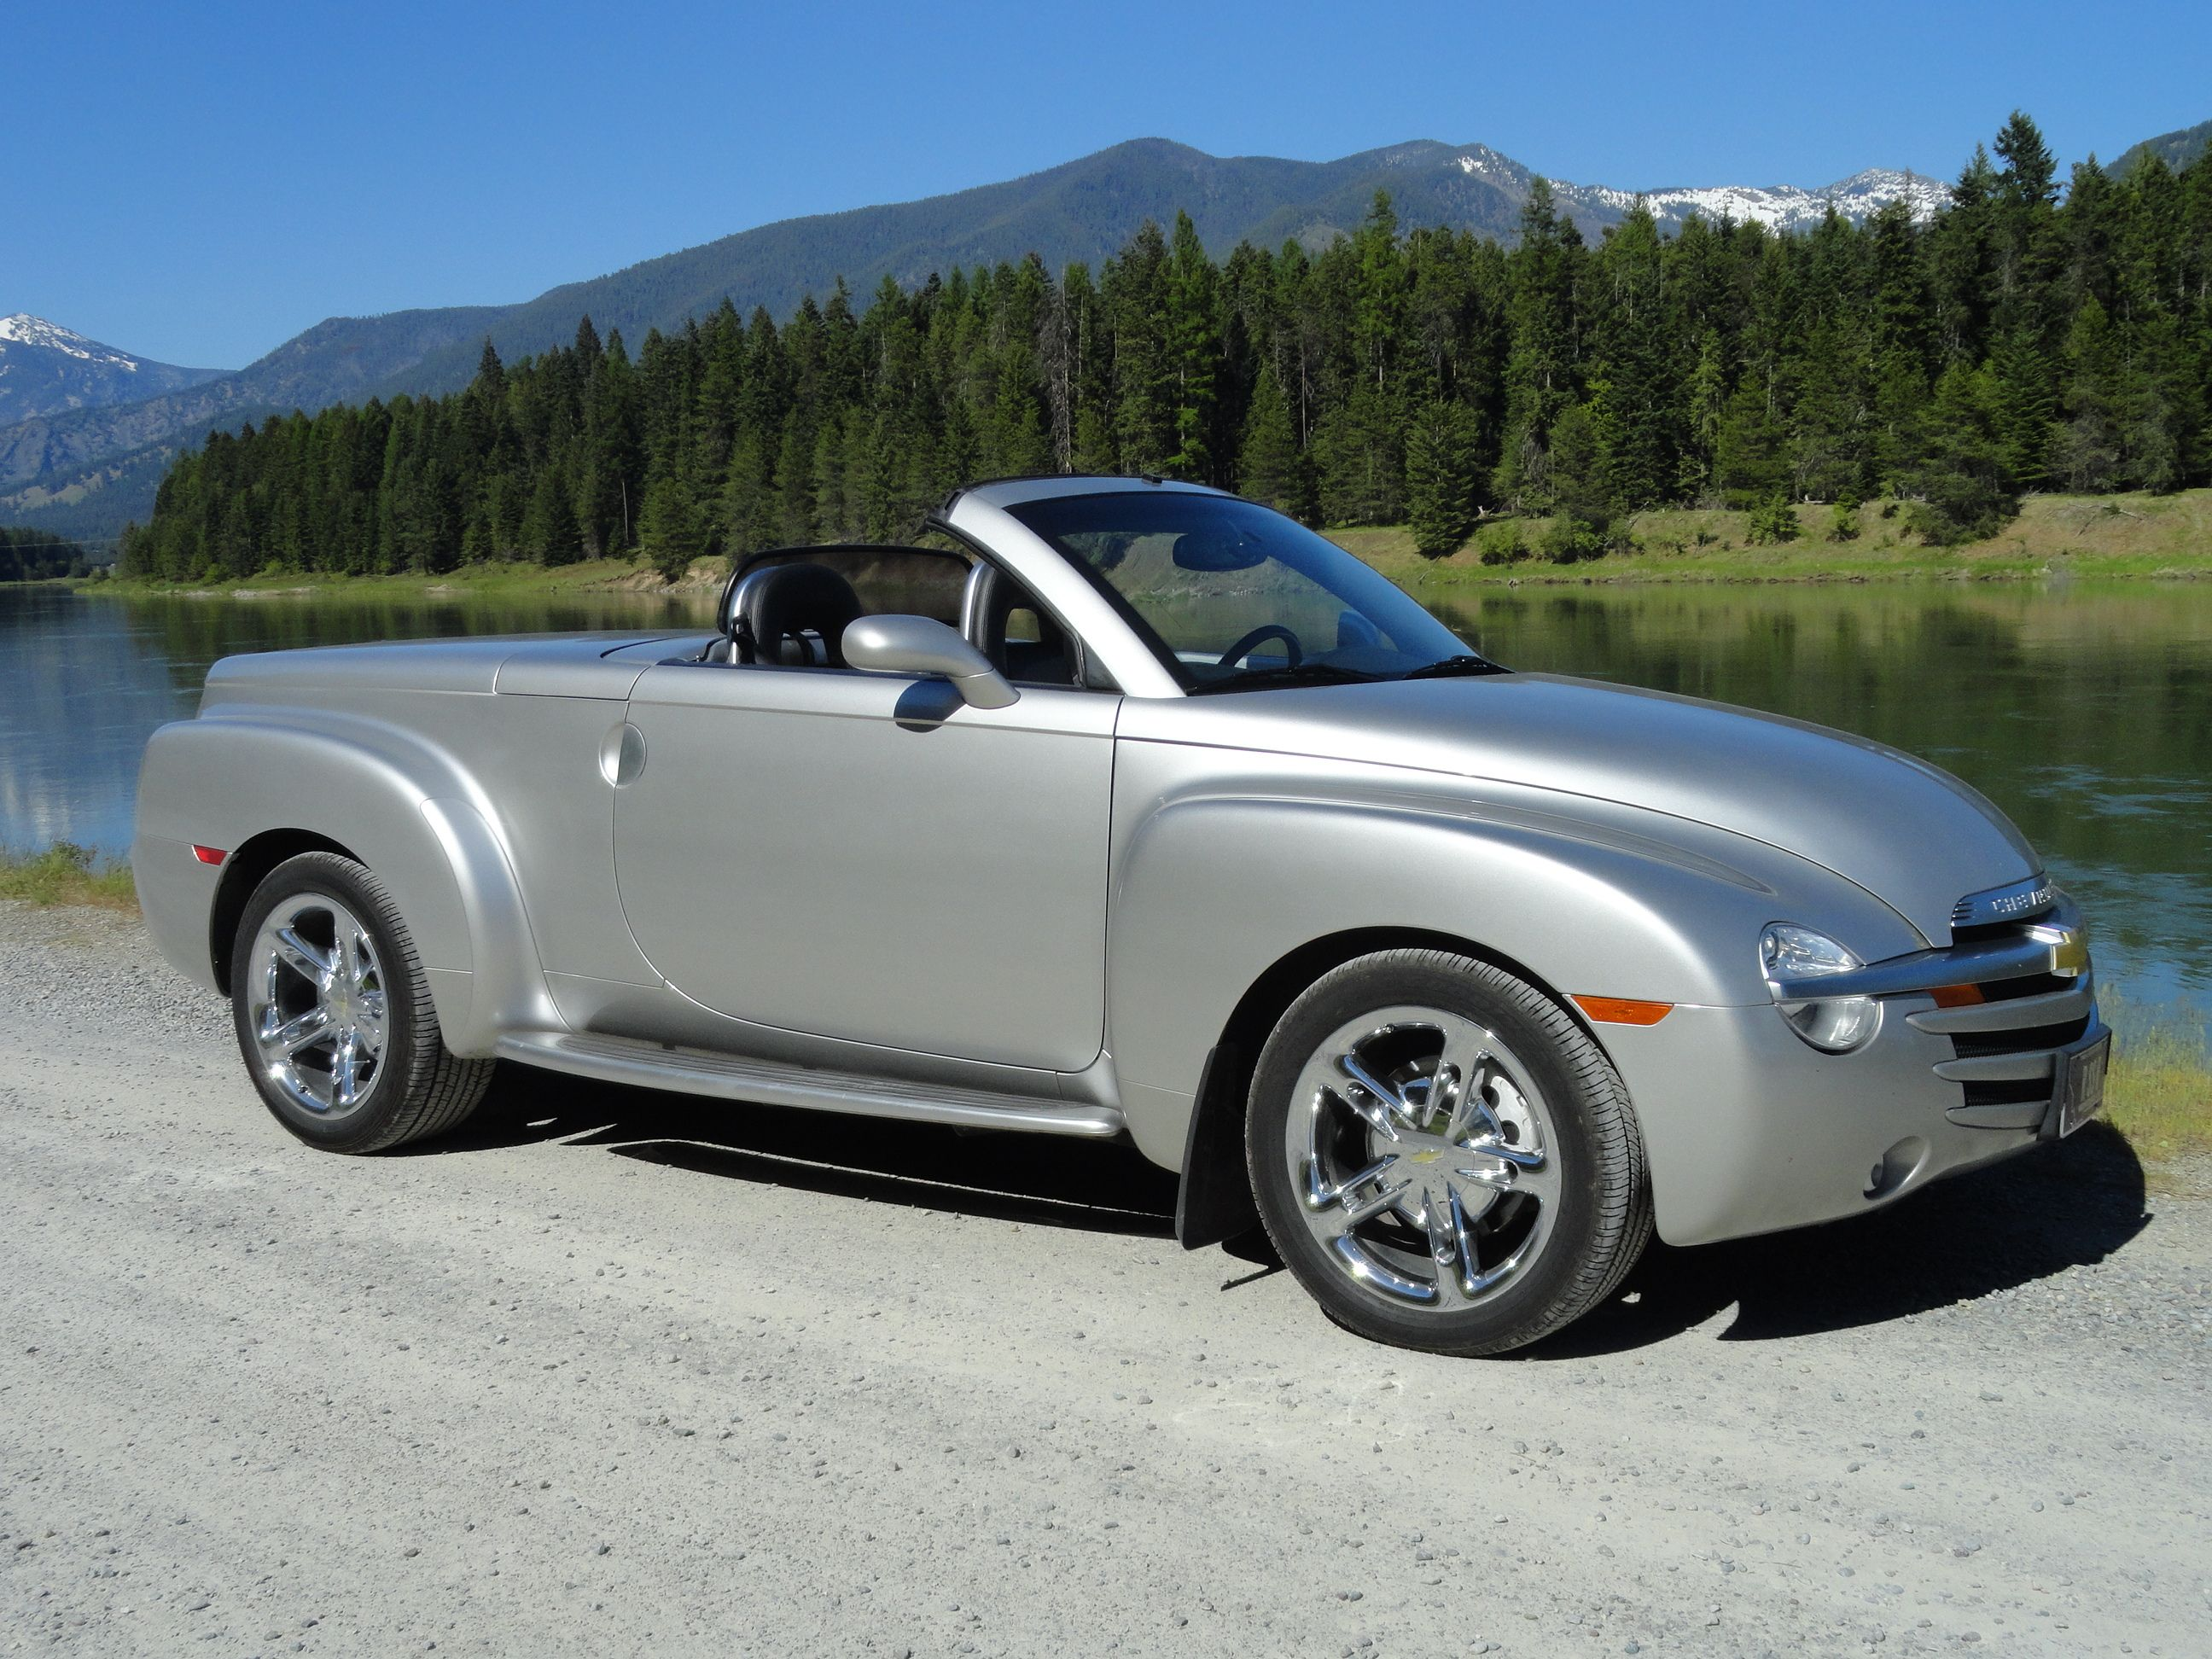 2006 Chevy SSR mine 6speed Lucky Me!!!! Chevy ssr